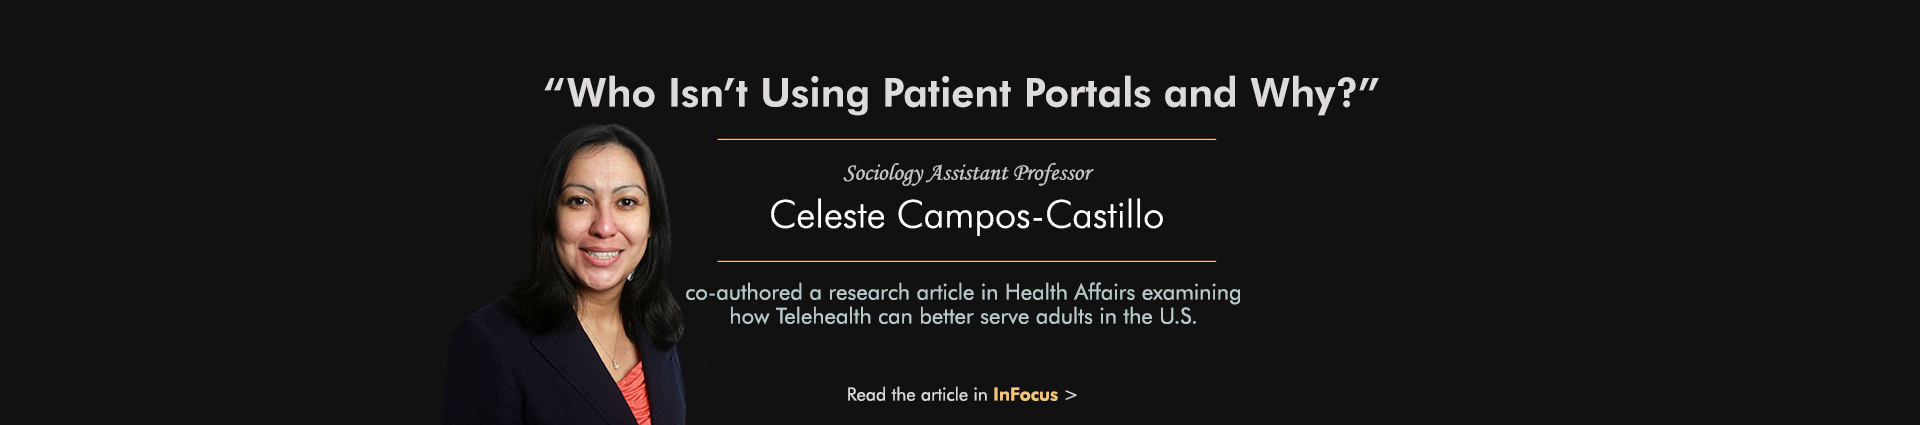 Who's using patient portals - Celeste Campos-Castillo